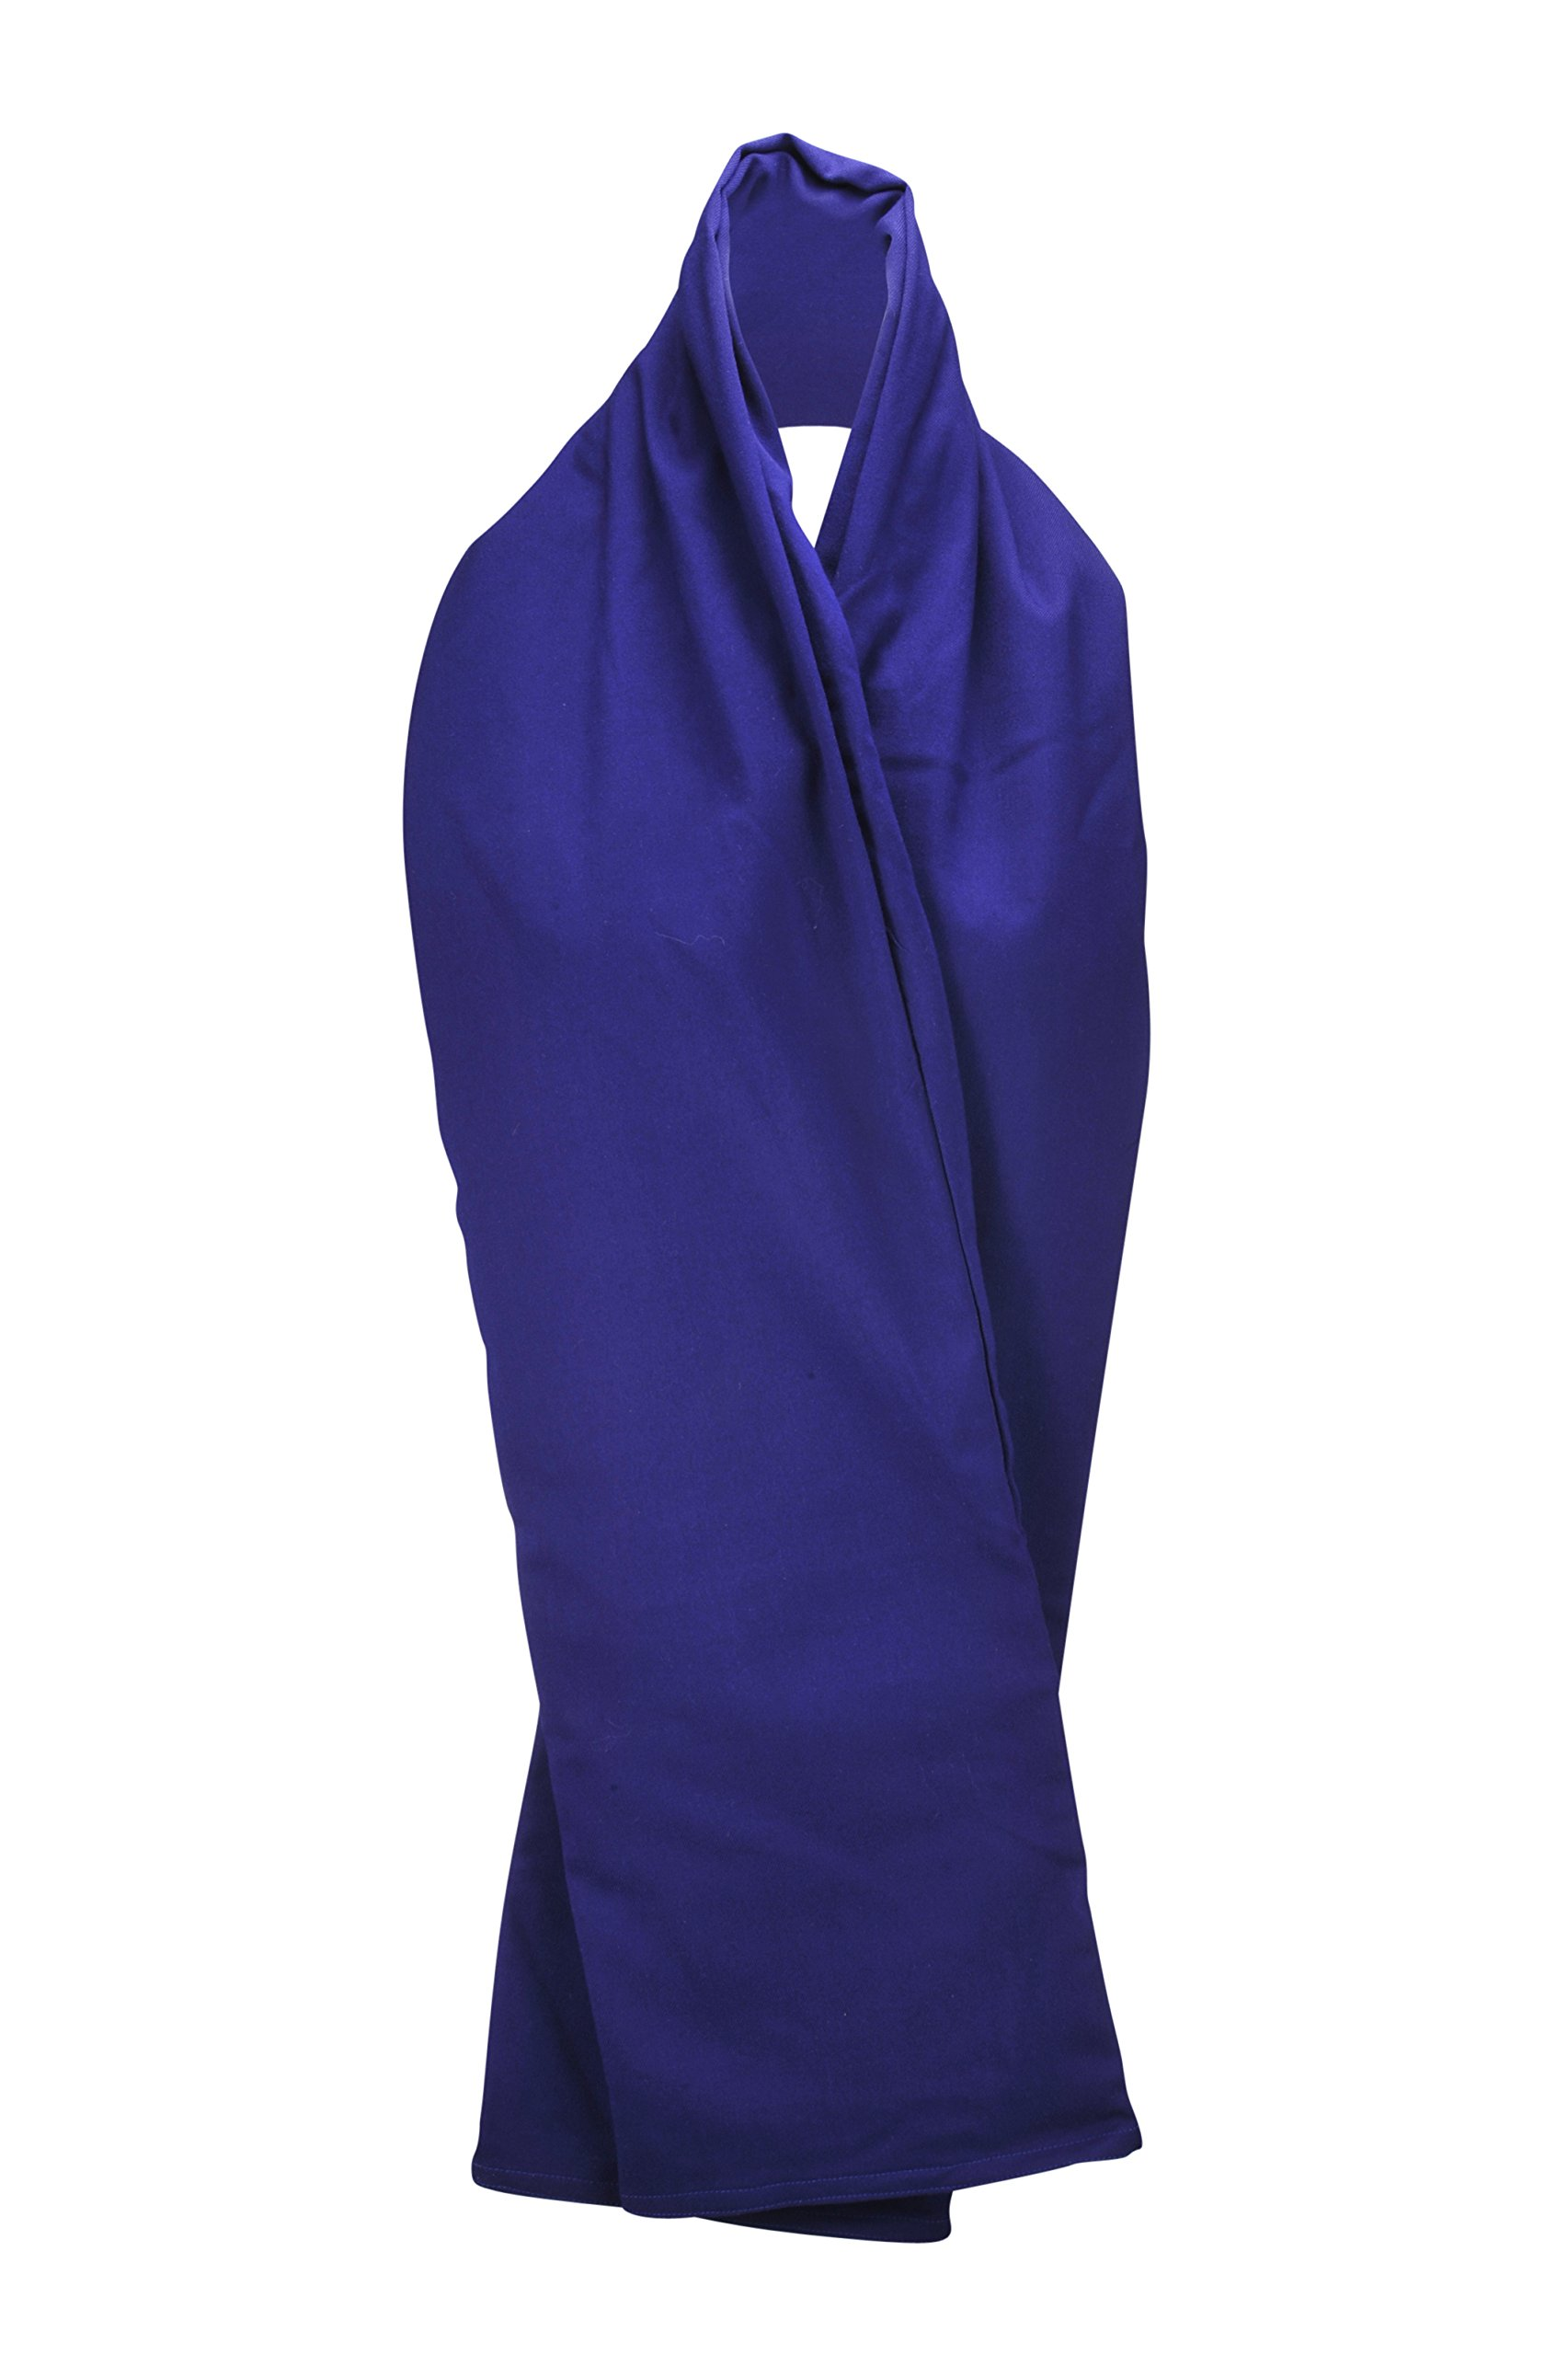 The RainScarf - Reversible Scarf | Includes Waterproof Hood and 2 Pockets | Soft and Comfortable | Generous Length - Purple